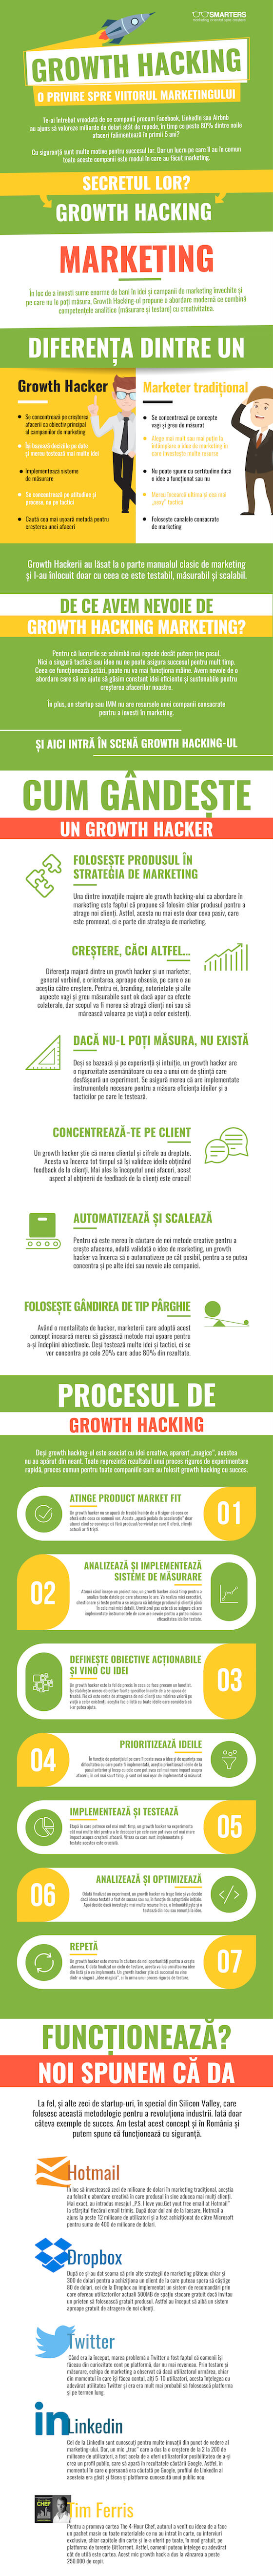 Growth hacking infografic